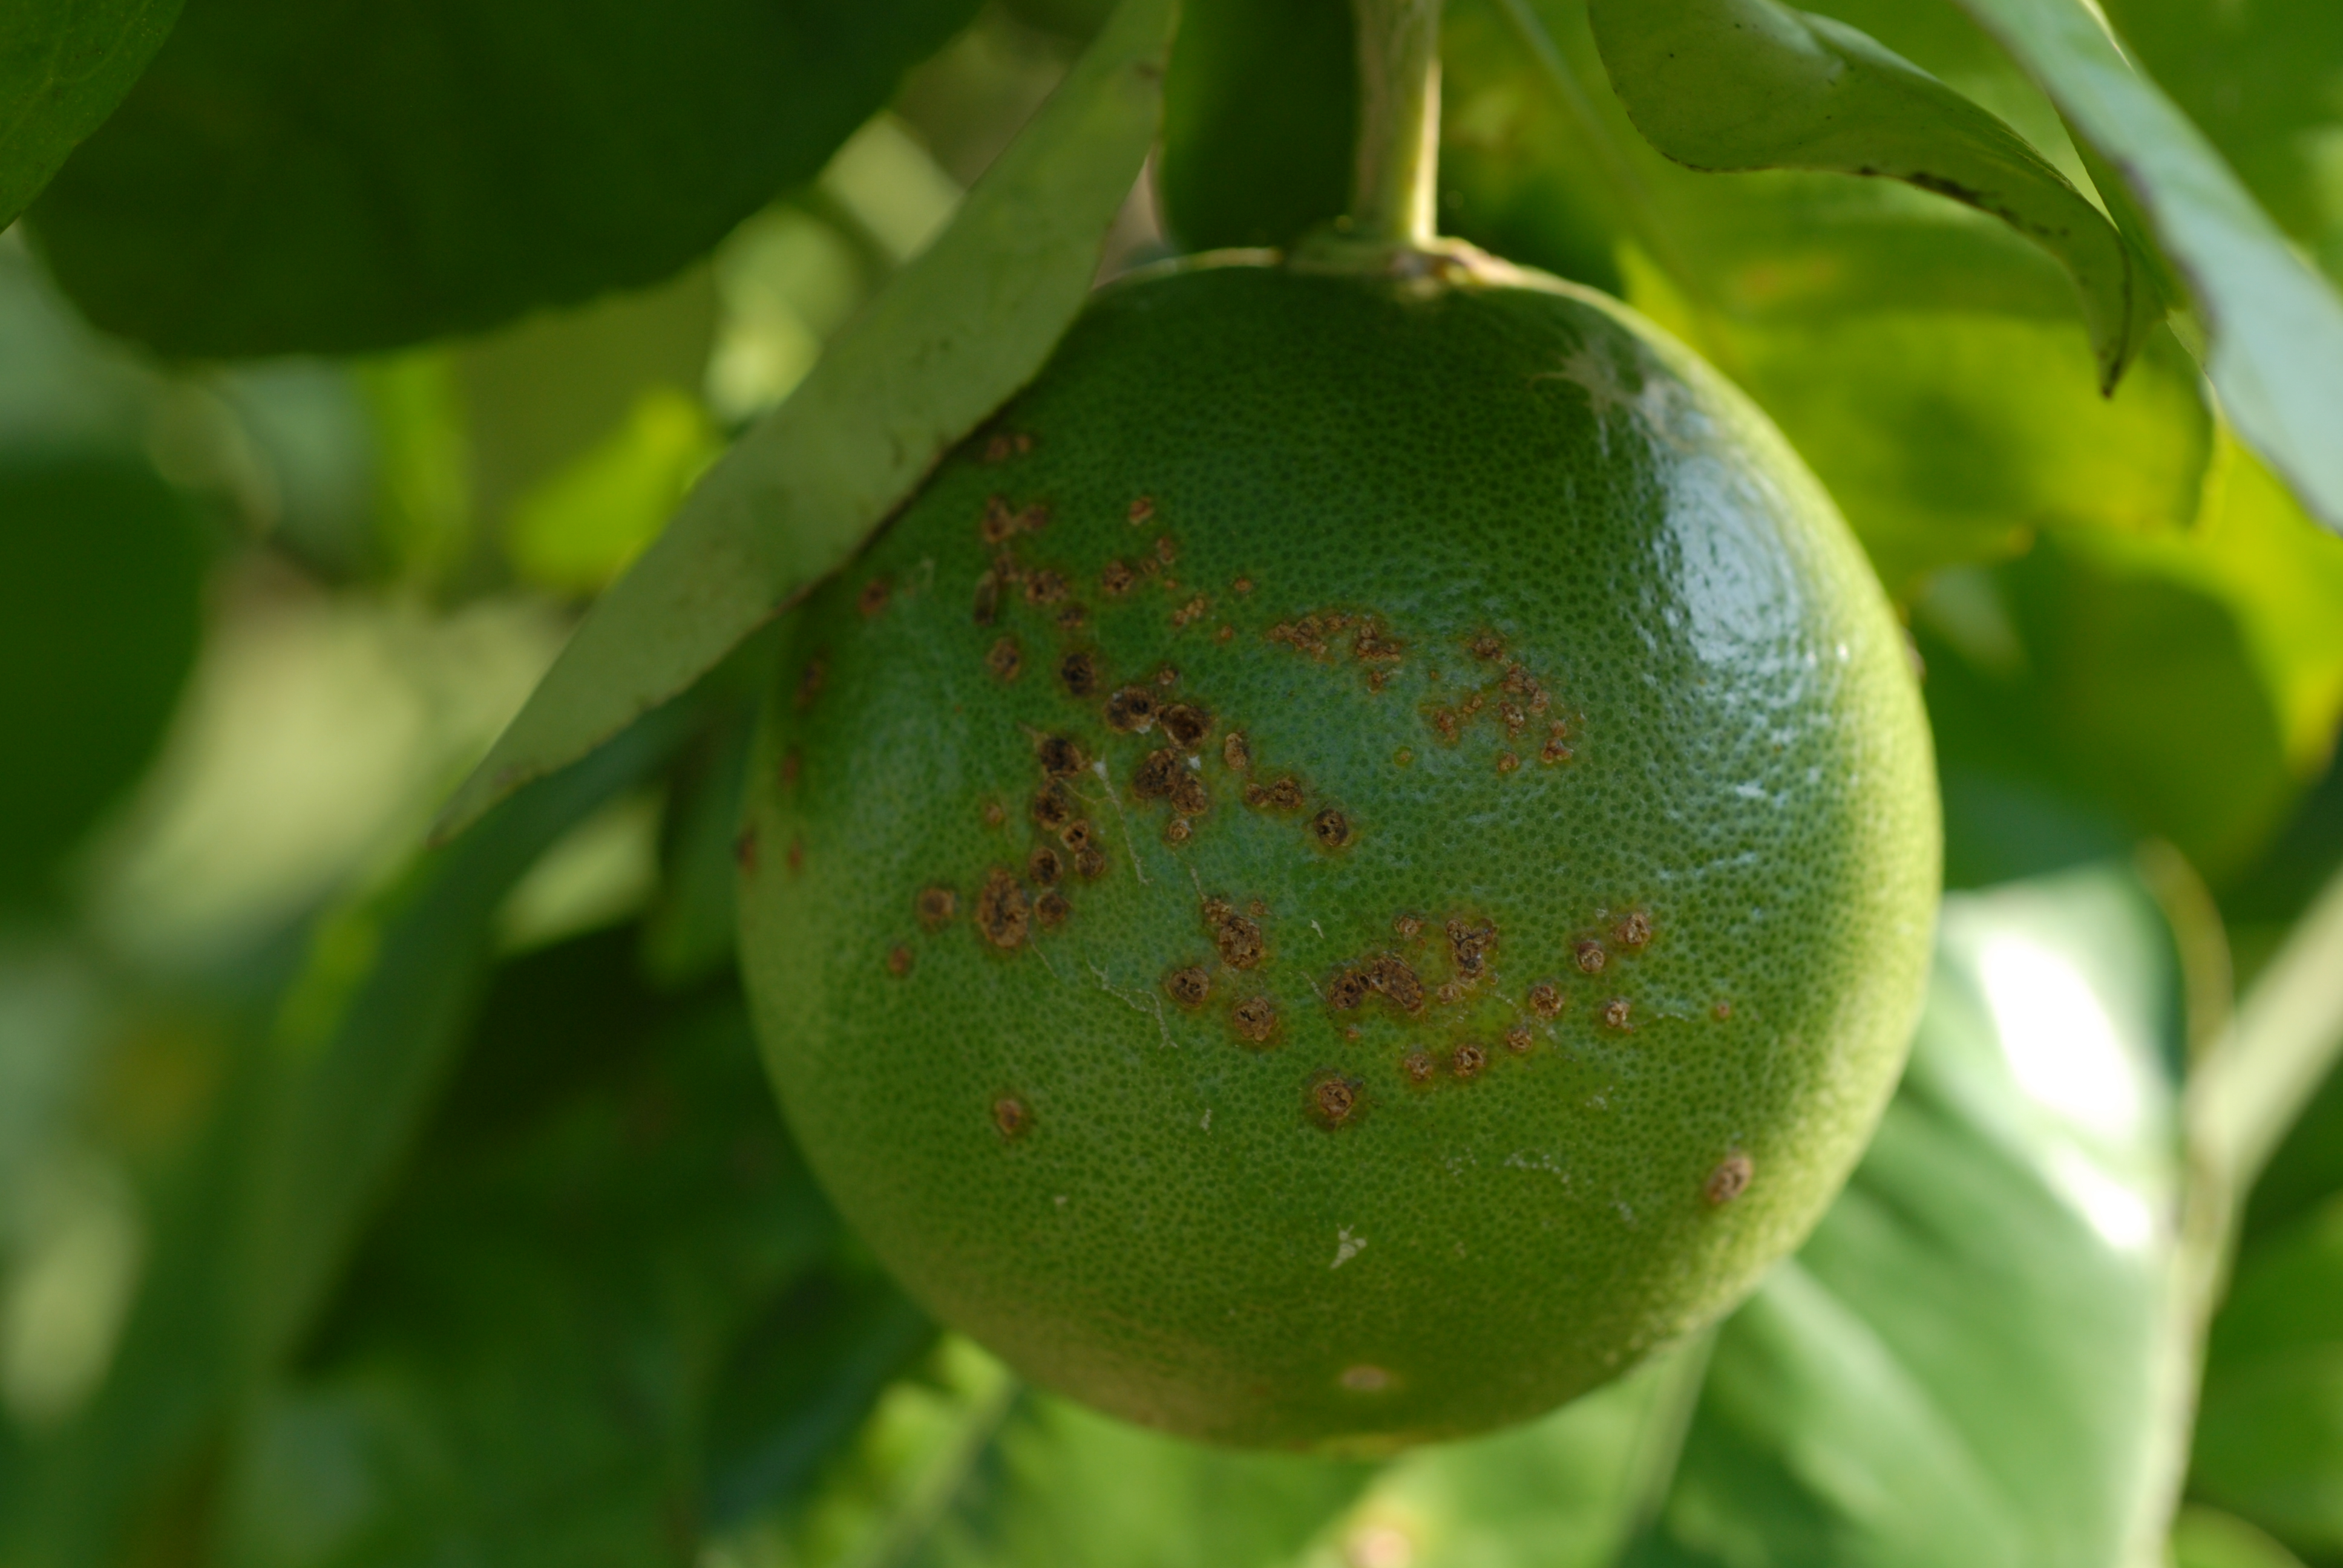 County agents, others get update on citrus disease